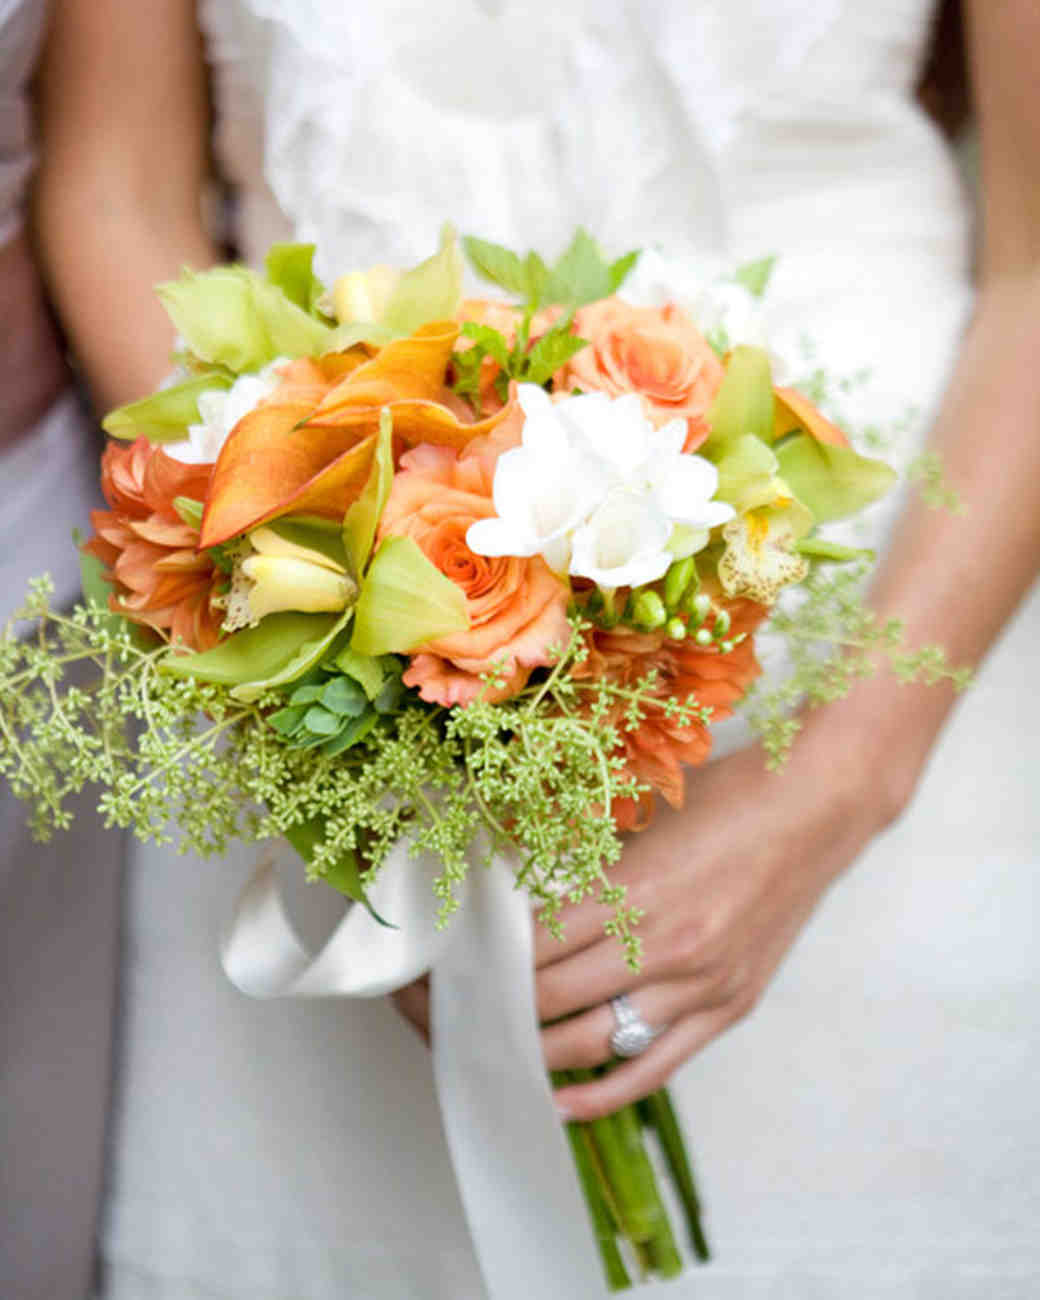 Real weddings with orange ideas martha stewart weddings orange white and green bouquet mightylinksfo